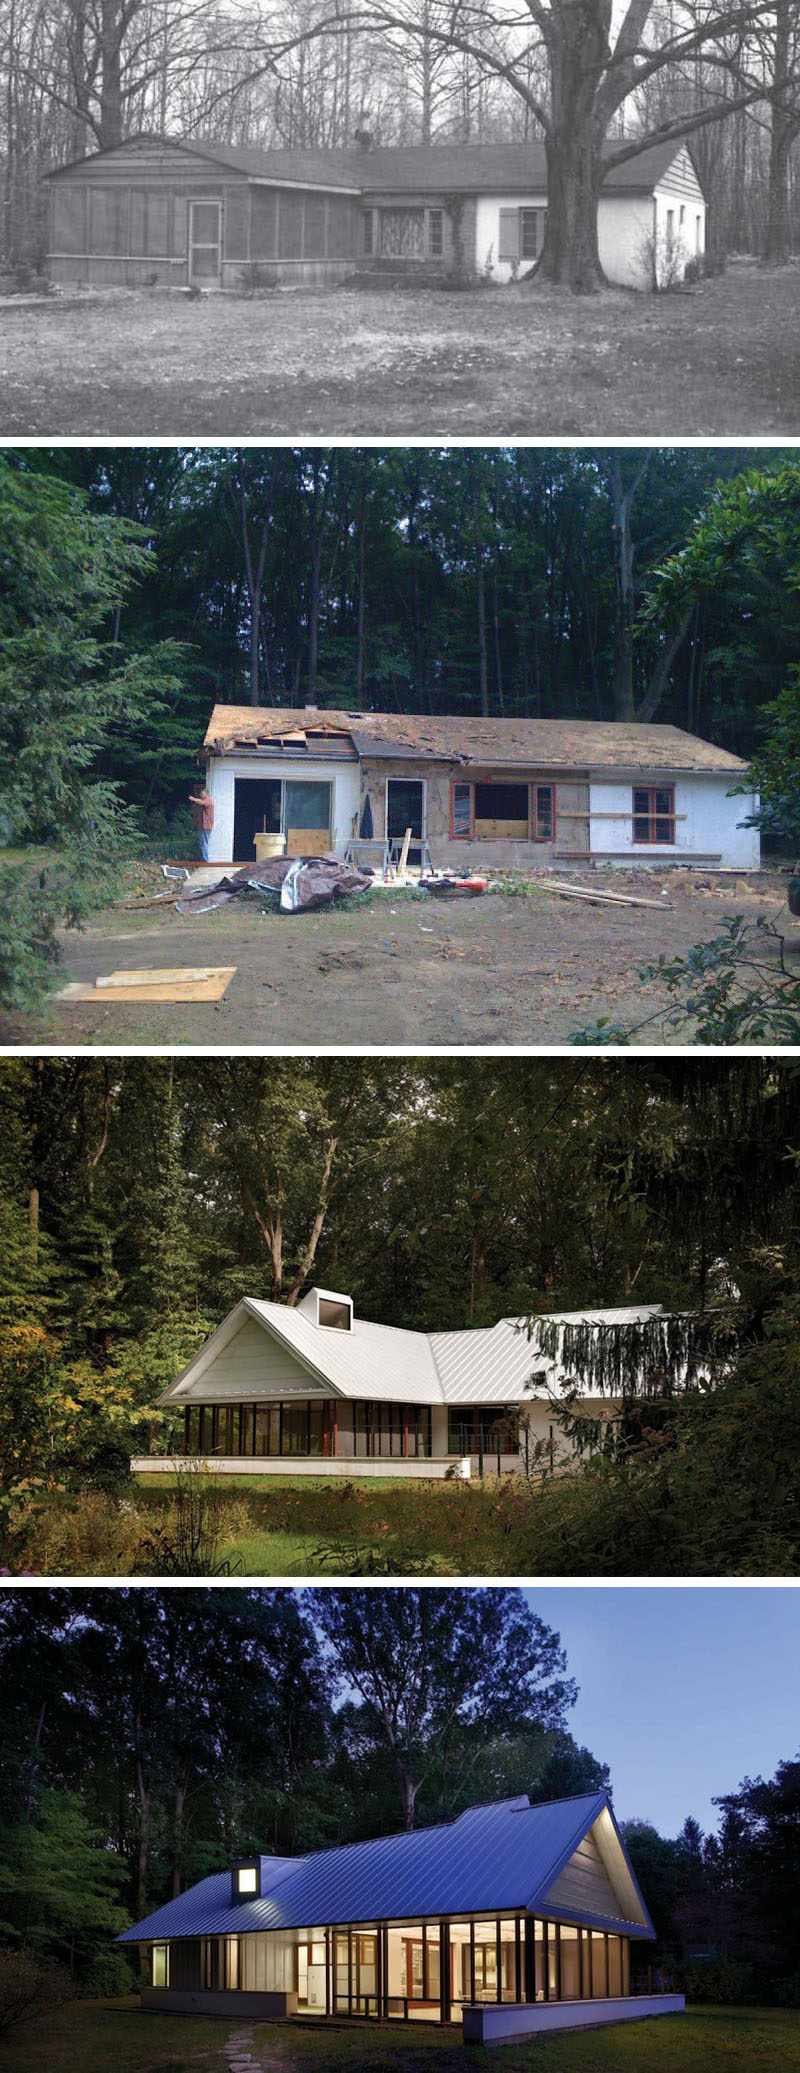 House Renovation Ideas - 17 Inspirational Before & After Projects // An old abandoned cabin in the woods was rescued and transformed into a modern escape from reality.